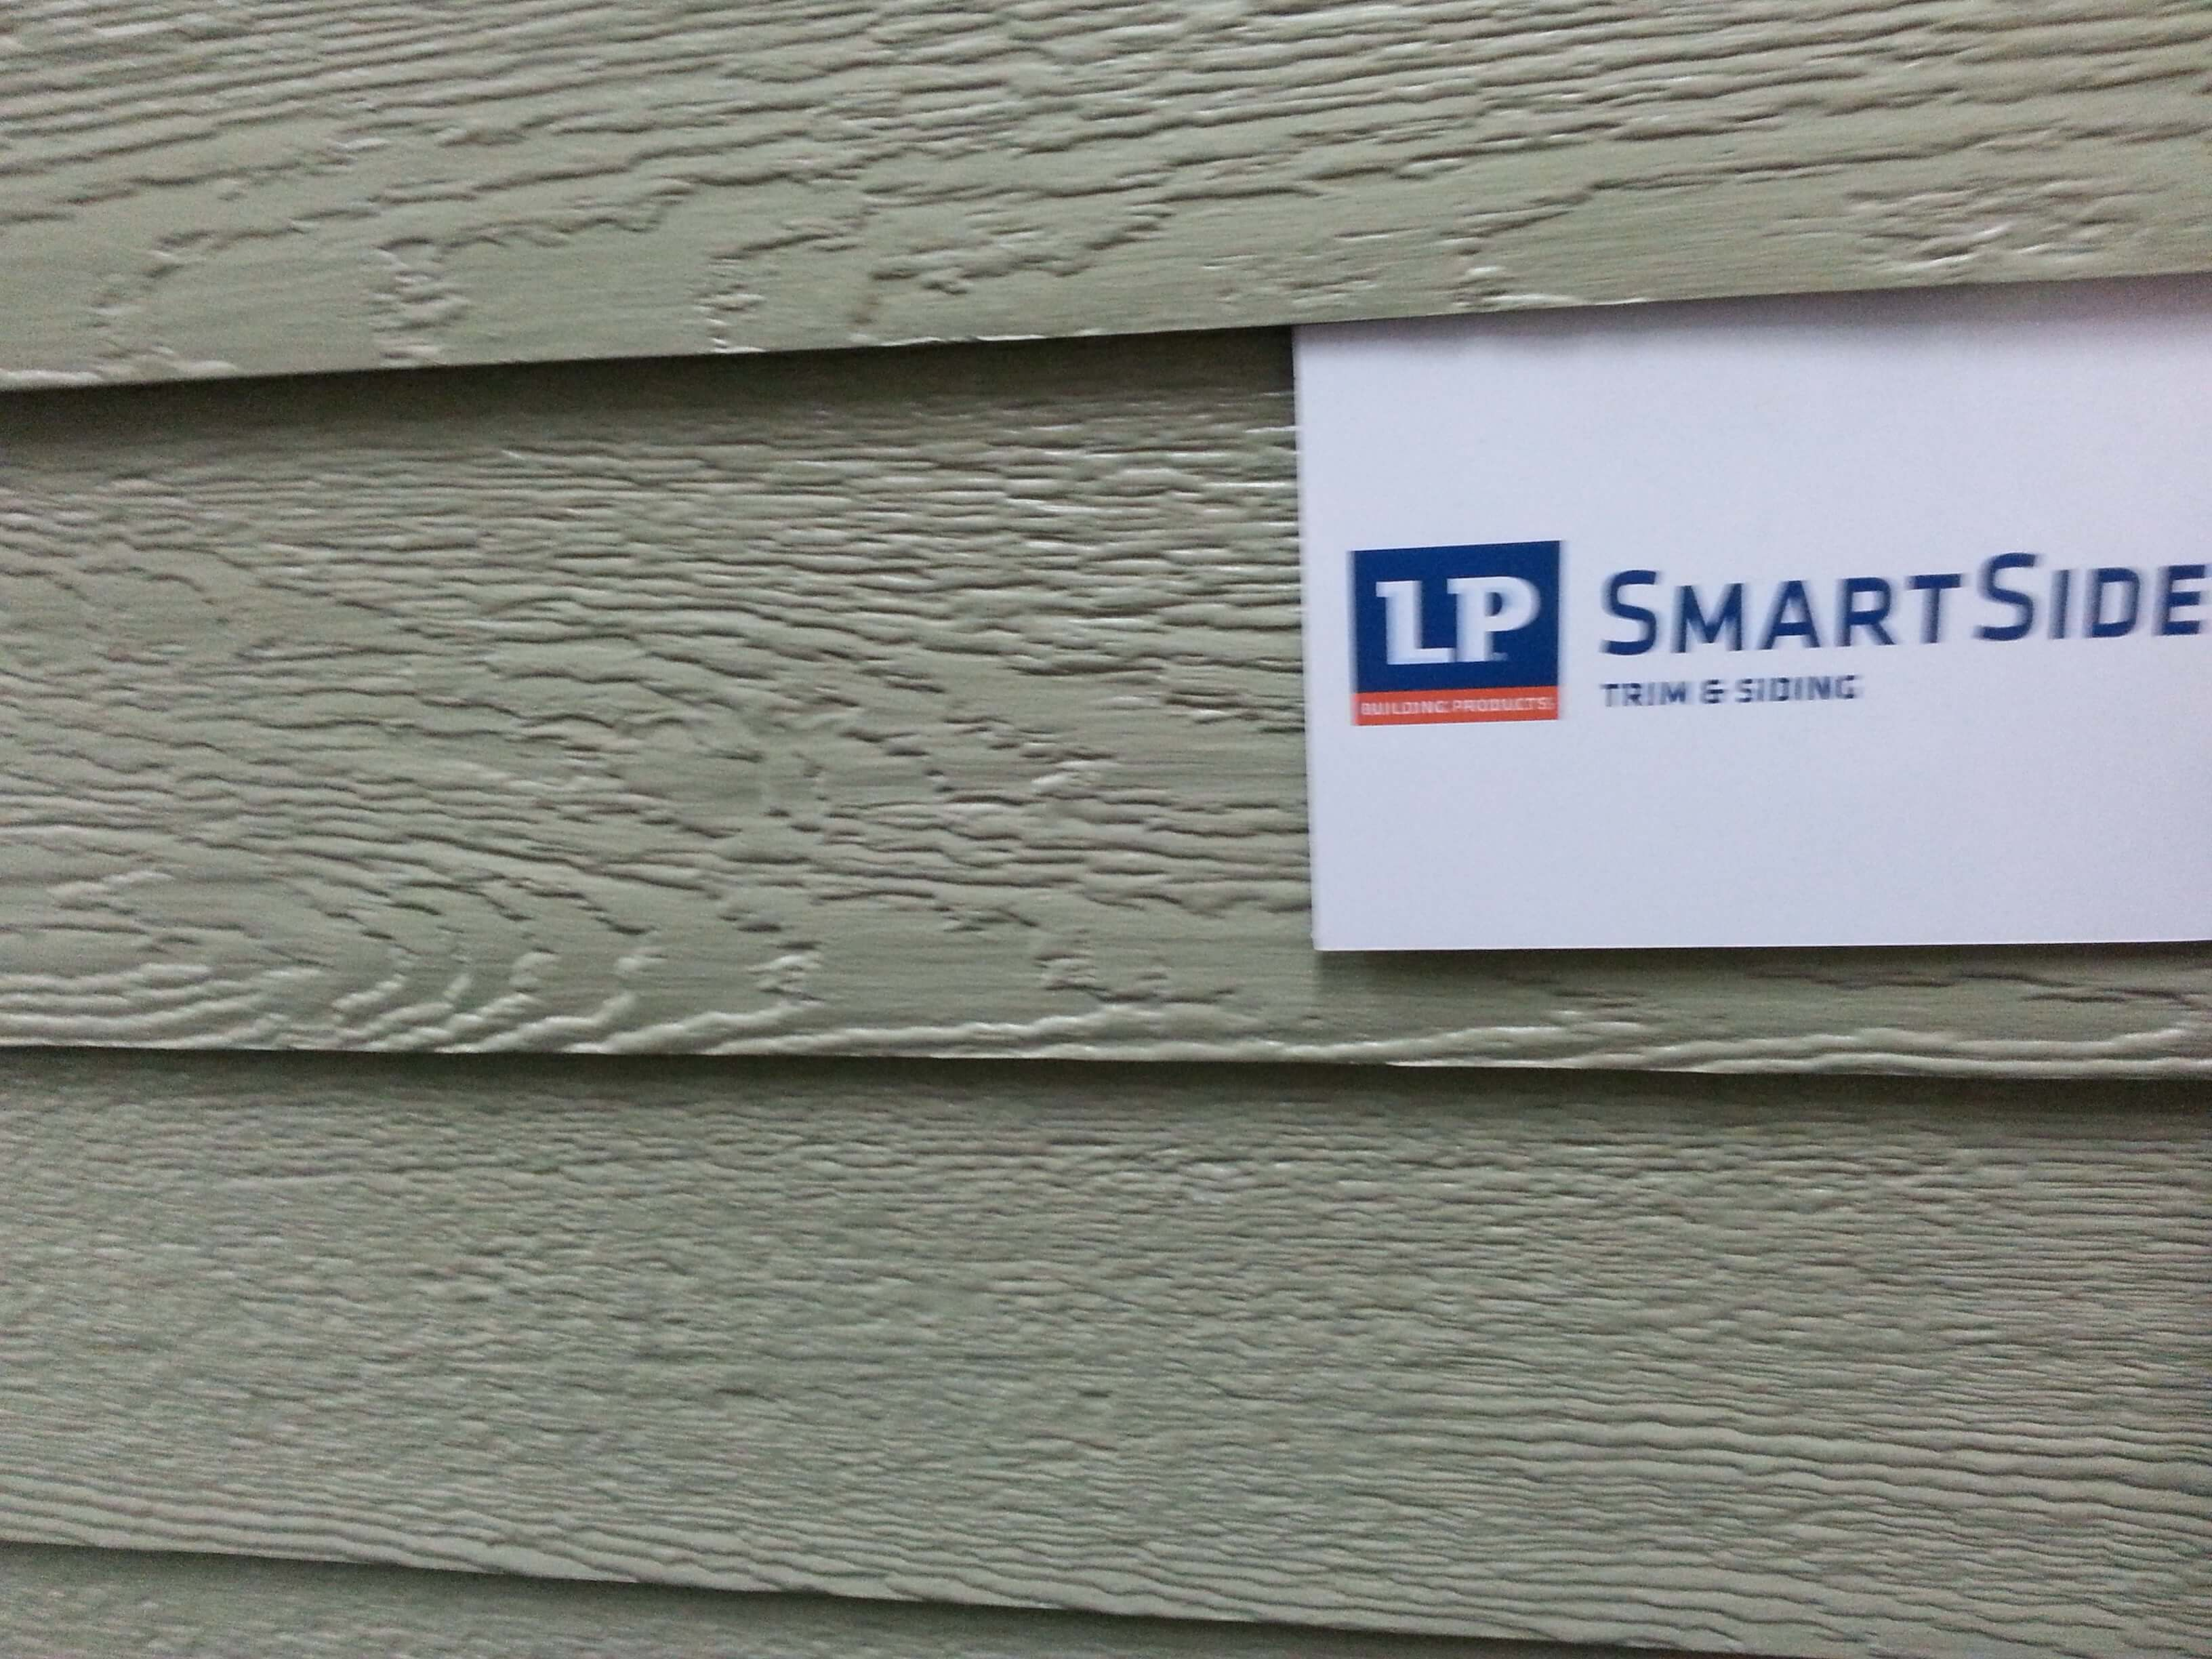 Louisiana pacific smart siding